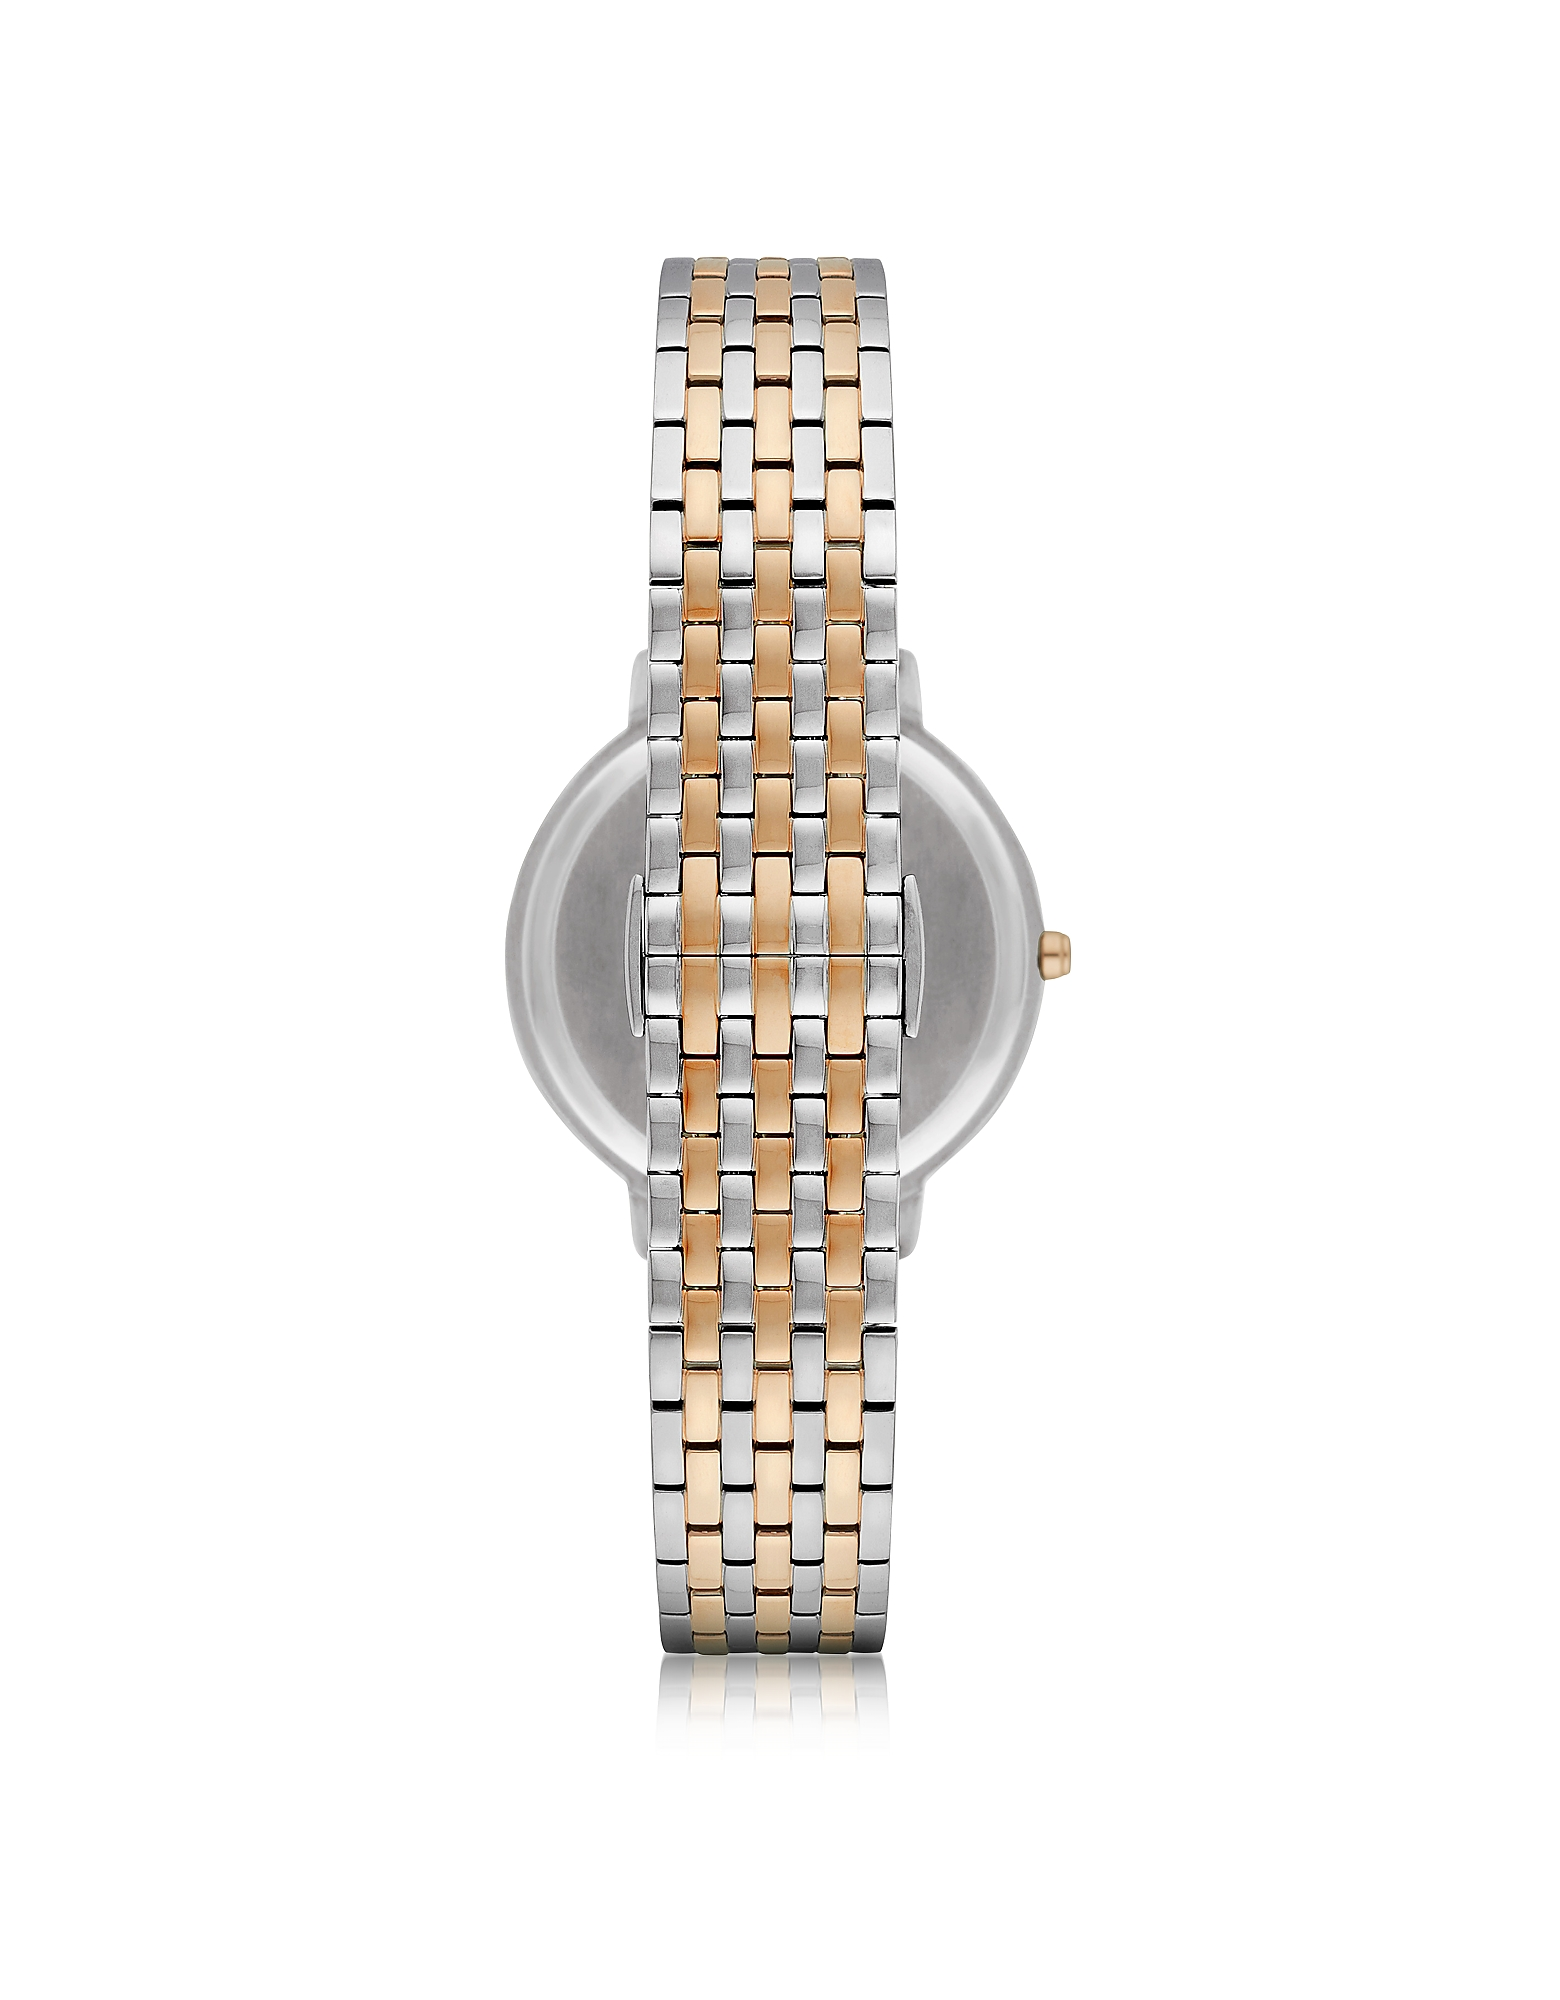 Kappa Two Tone Stainless Steel Women's Quartz Watch w/Mother of Pearl Dial от Forzieri.com INT